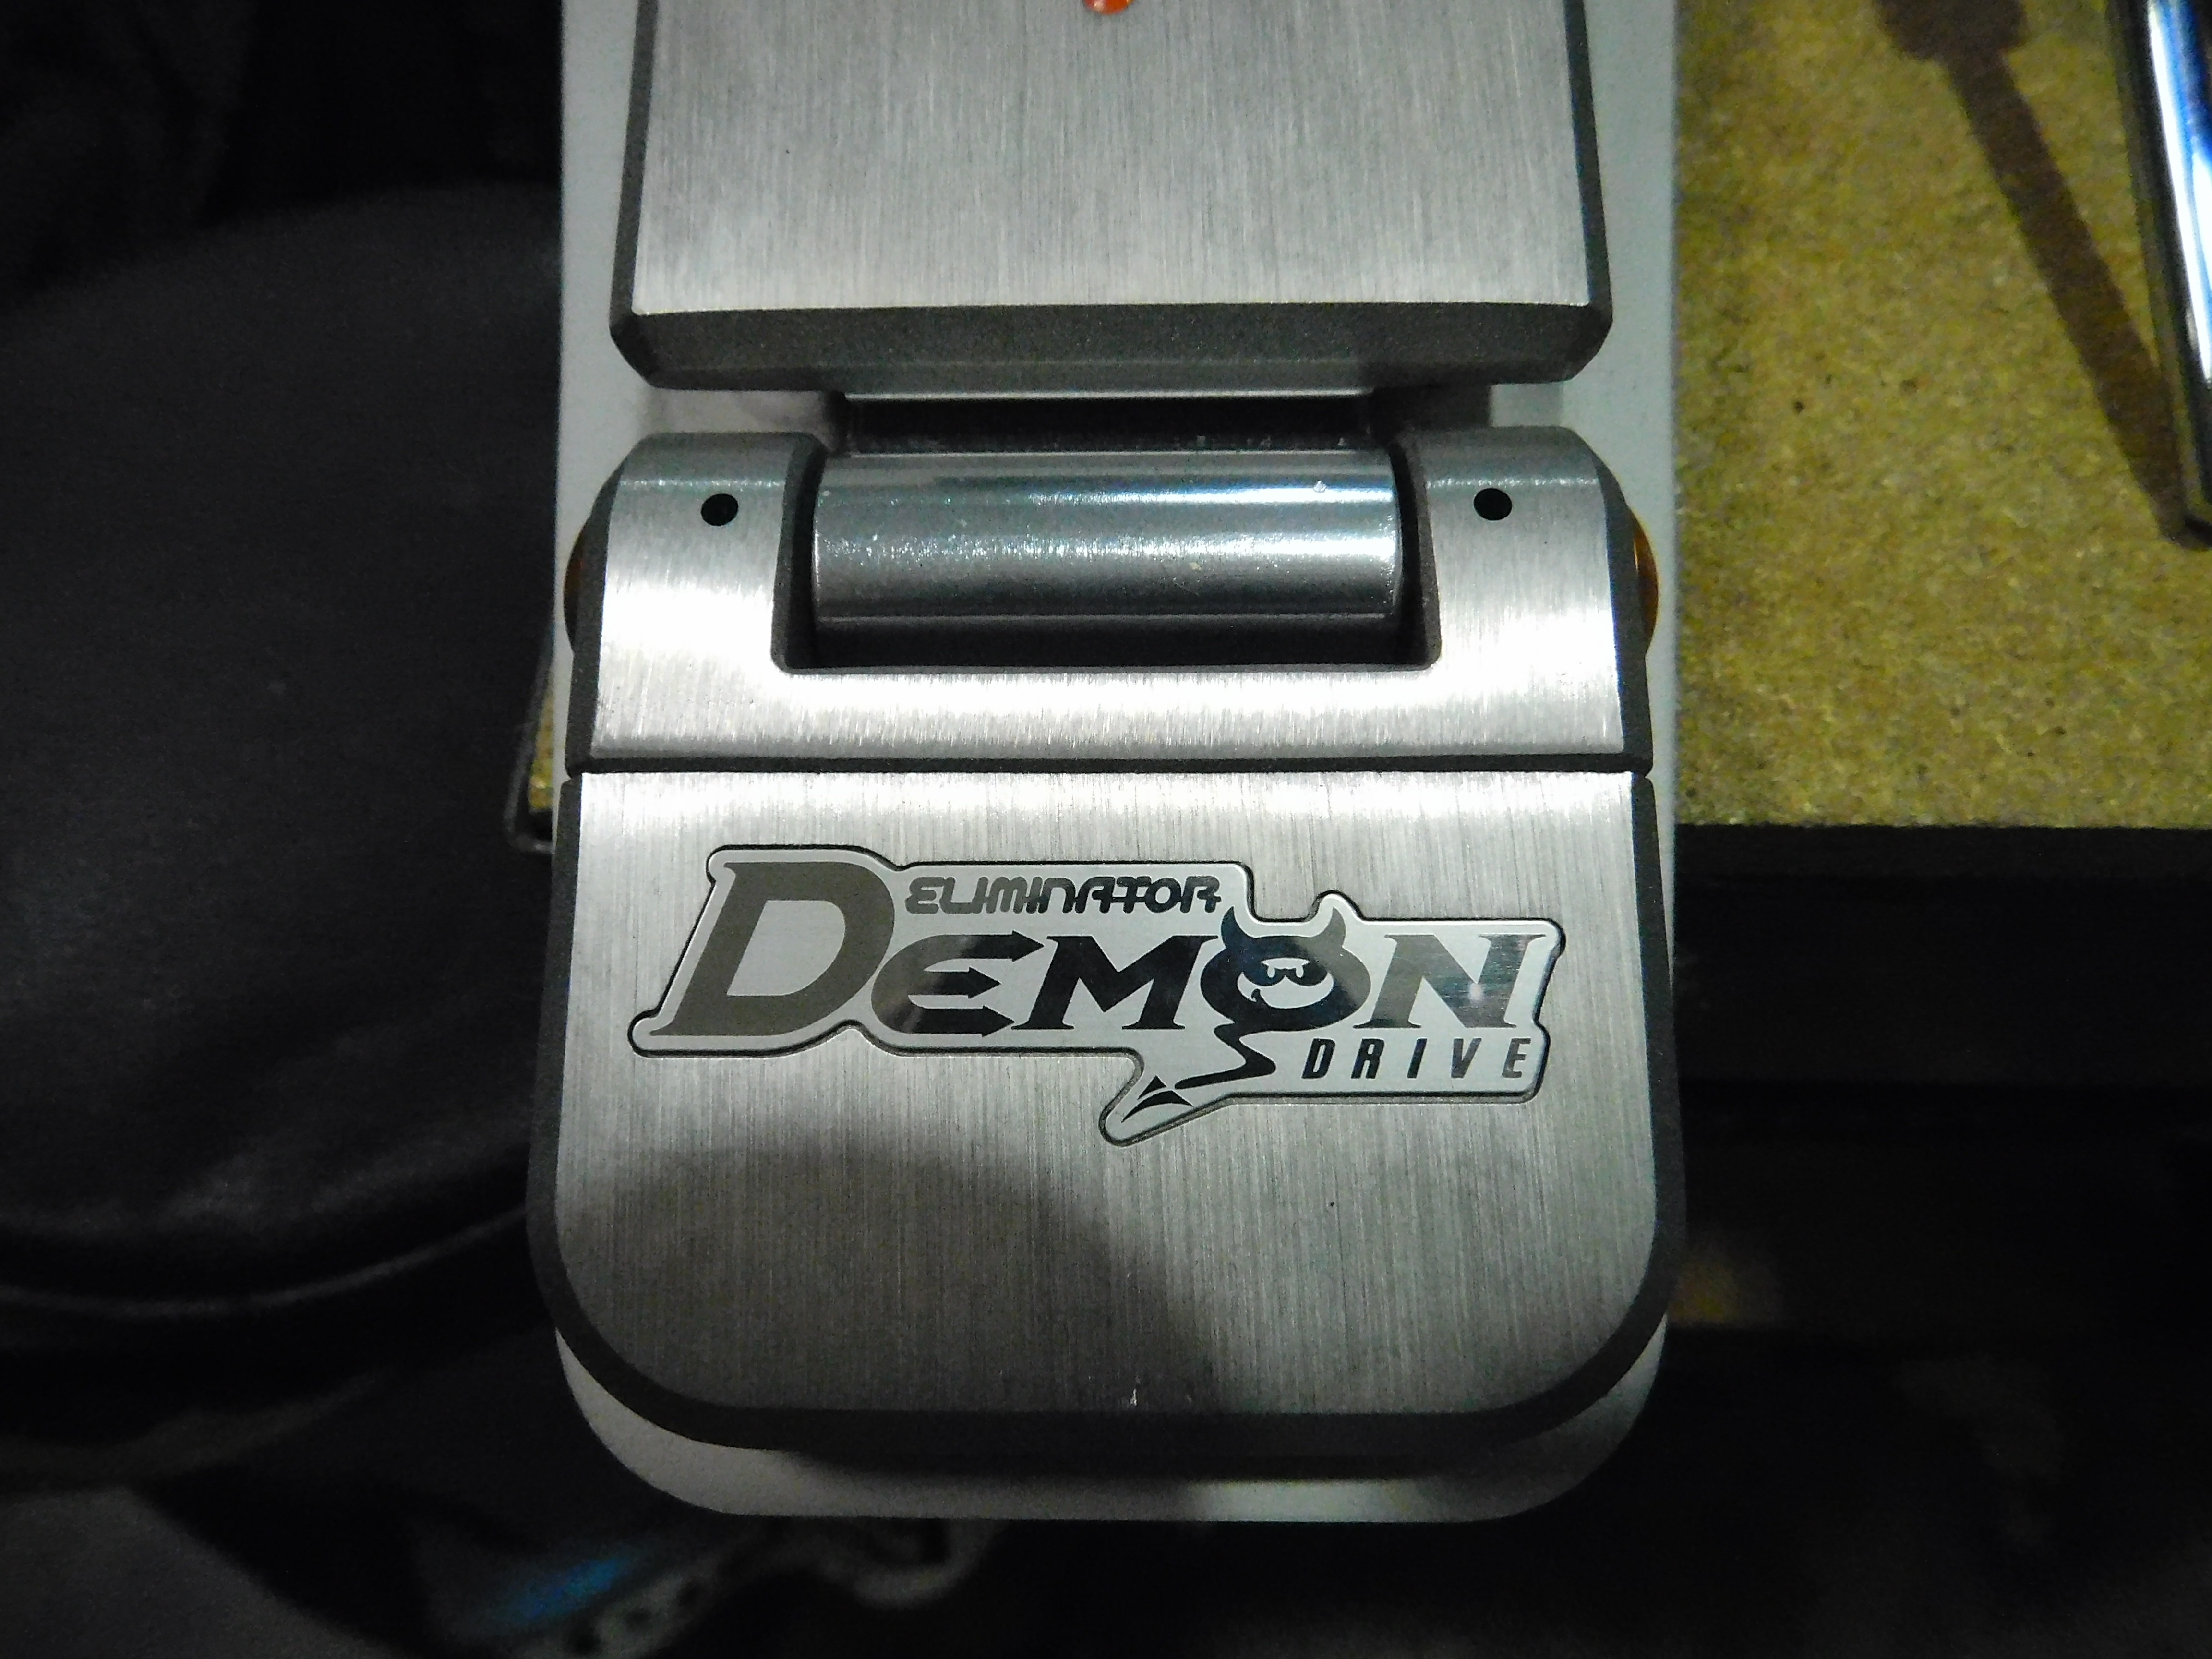 PEARL ELIMINATOR Demon Drive Direct-Drive Double Pedal with Case!